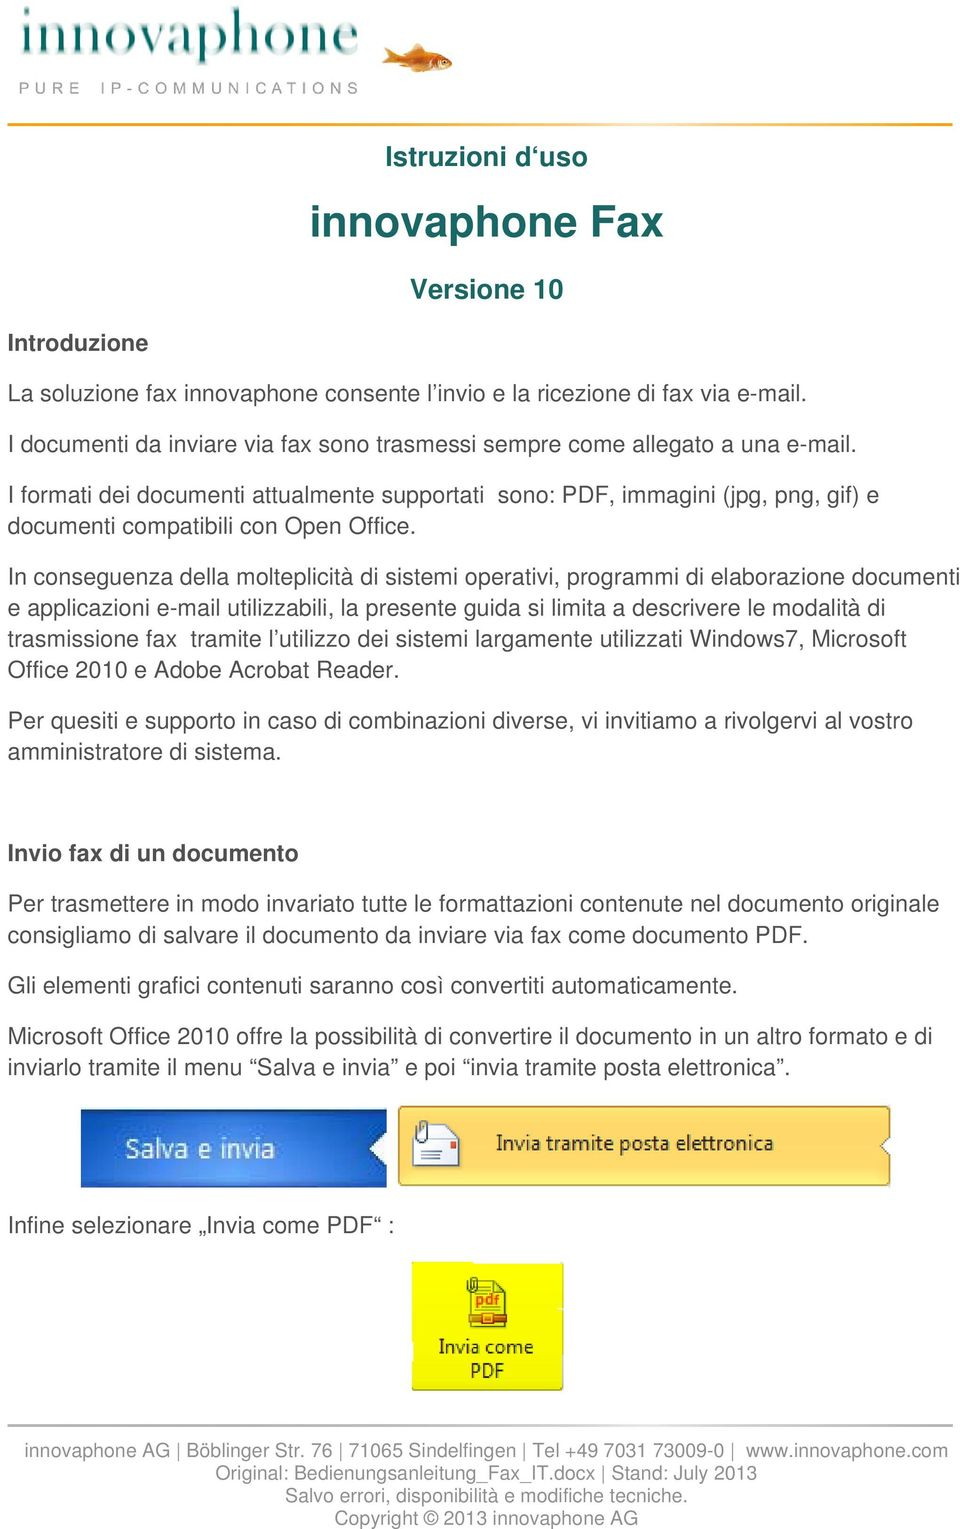 I formati dei documenti attualmente supportati sono: PDF, immagini (jpg, png, gif) e documenti compatibili con Open Office.